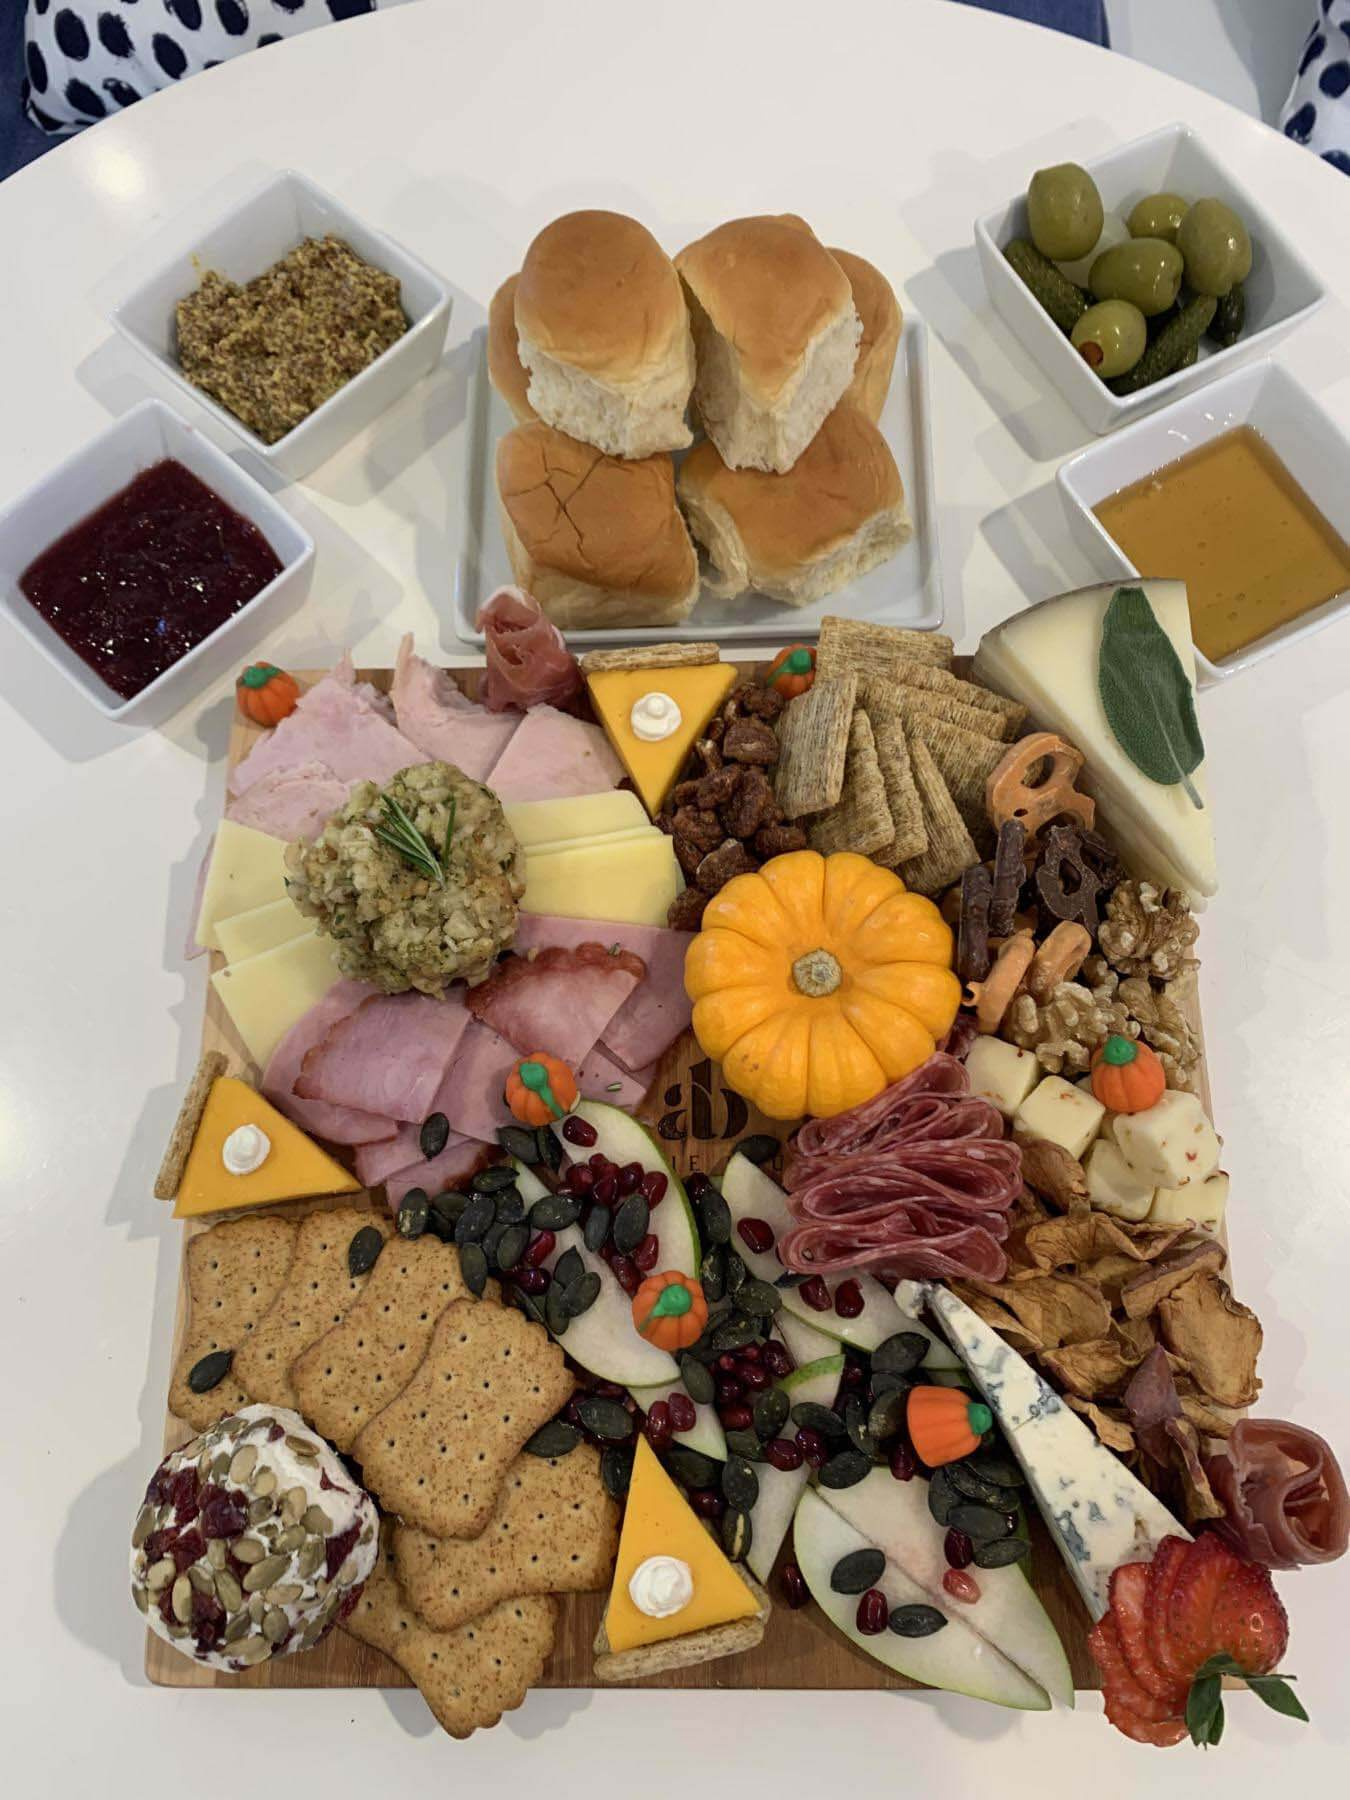 Anzie Blue's Thanksgiving takeout cheese and charcuterie tray with condiments.